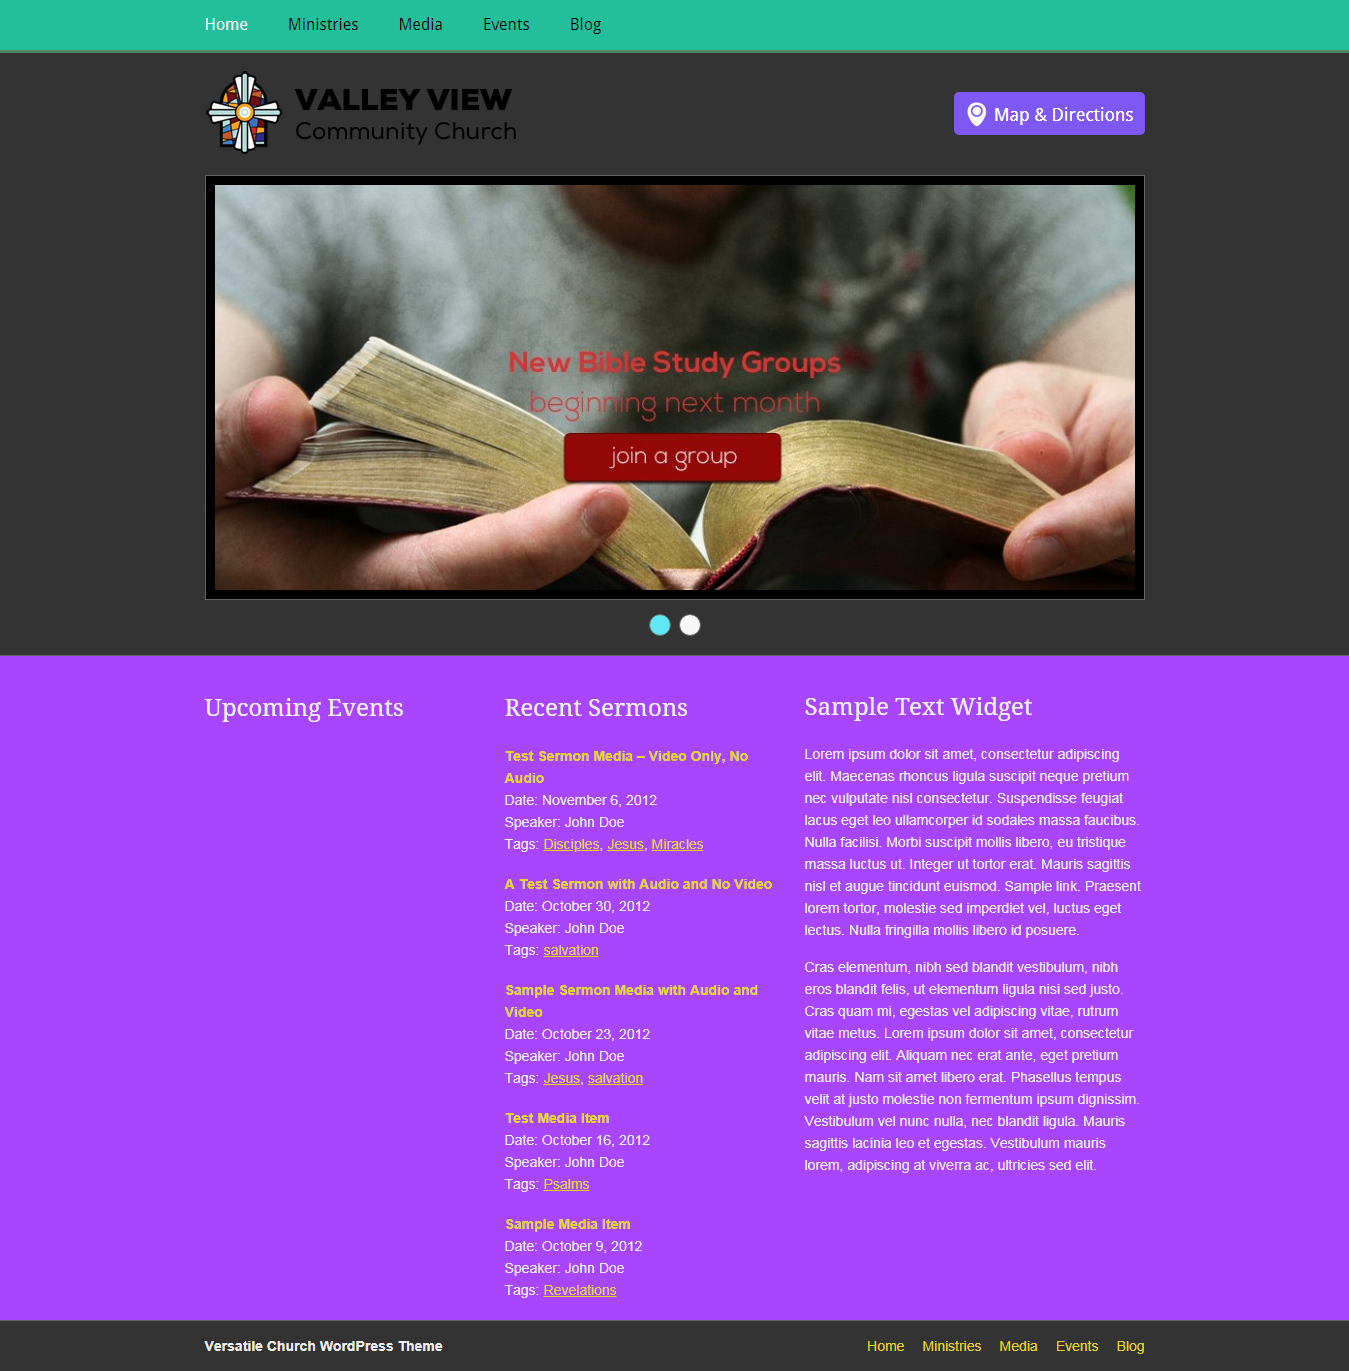 versatile best free church wordpress theme - 10+ Best Free WordPress Church Themes